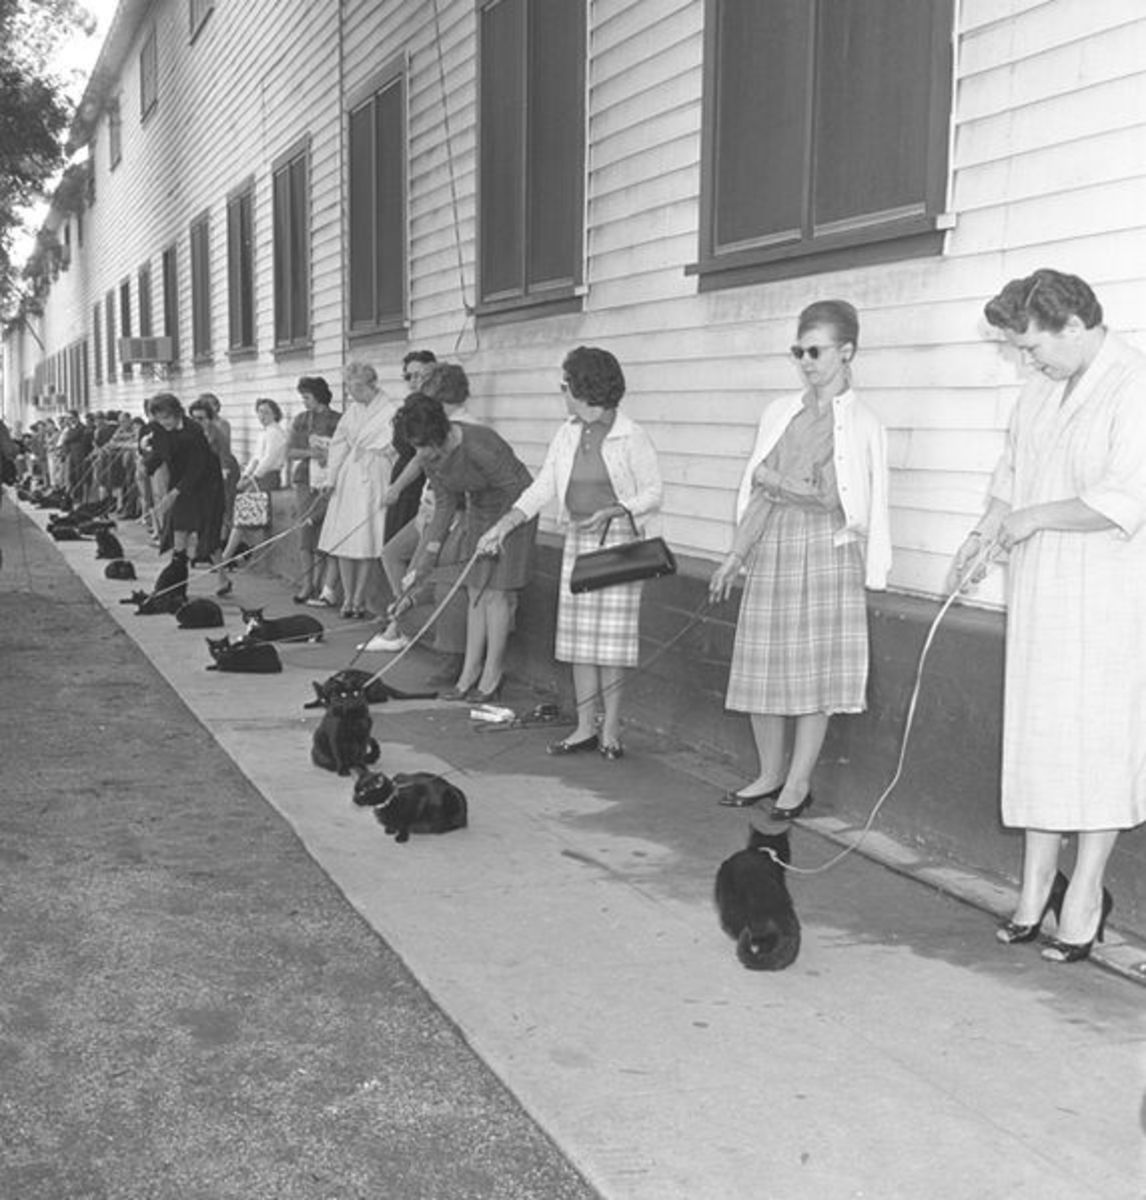 Casting Call for Black Cats in 1961 movie Tales of Terror!